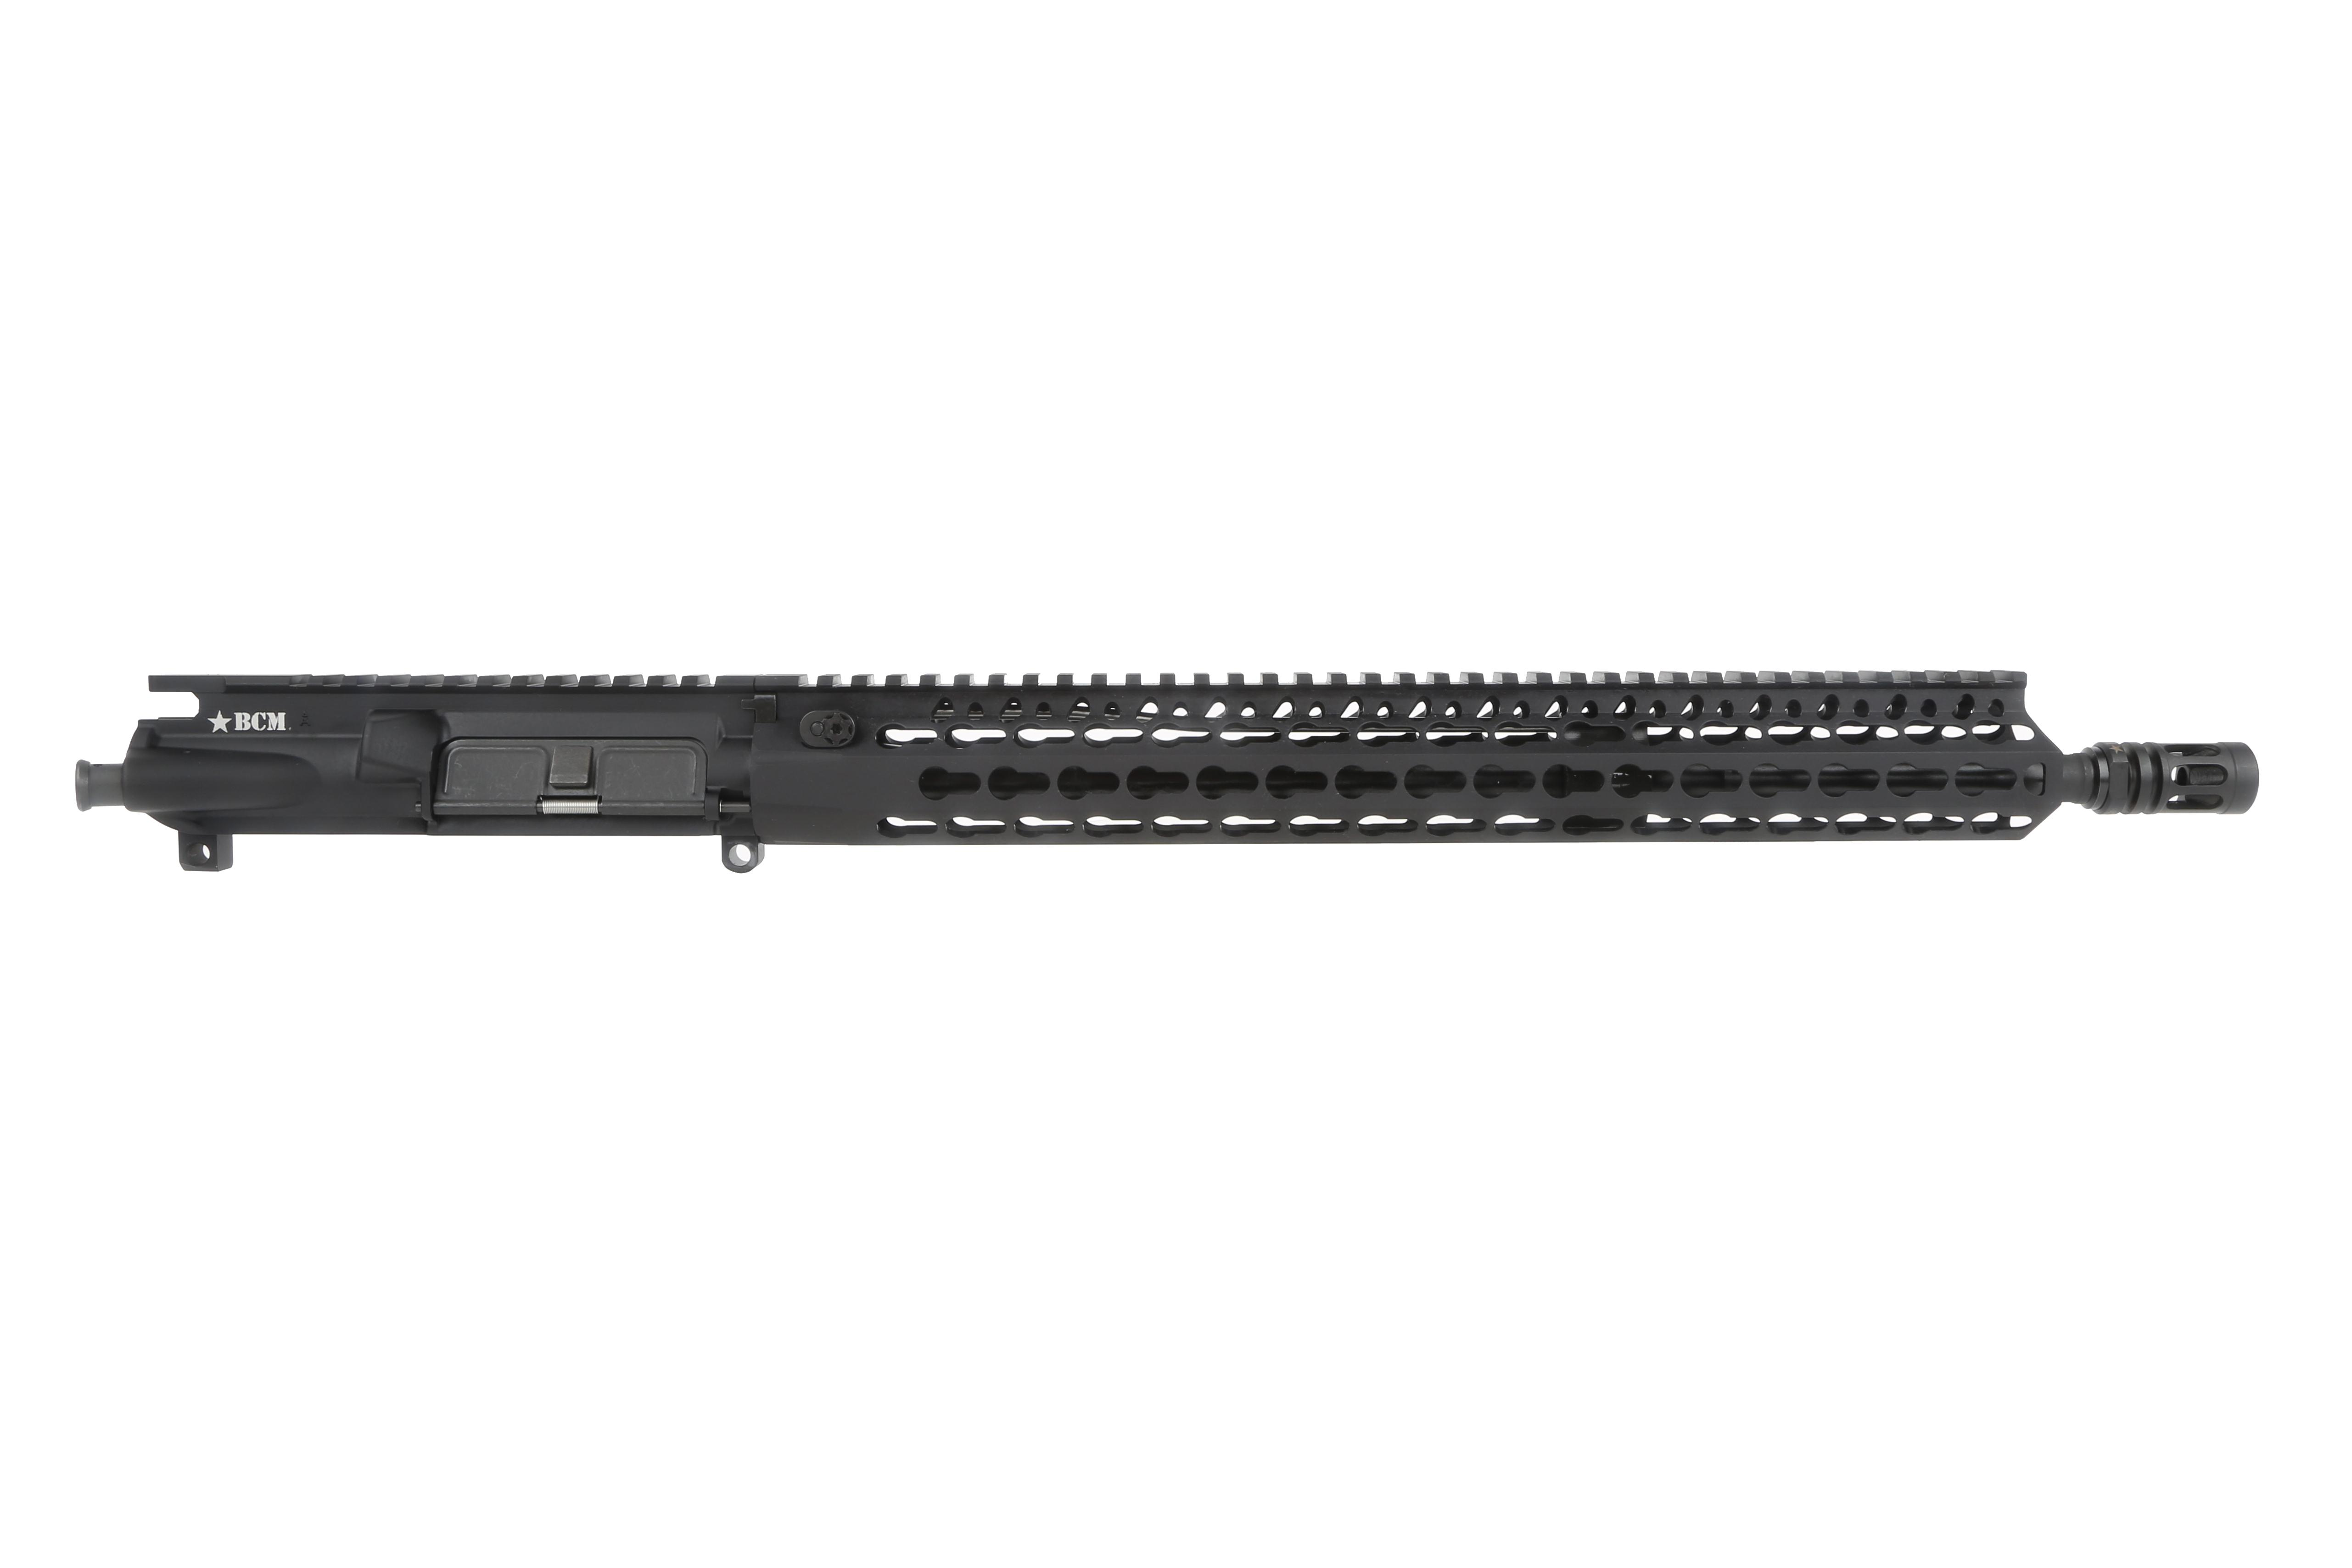 "Bravo Company Manufacturing 16 5.56 NATO 1:7 Enhanced Light Weight Barreled Upper - 15"" KeyMod KMR Alpha Rail"